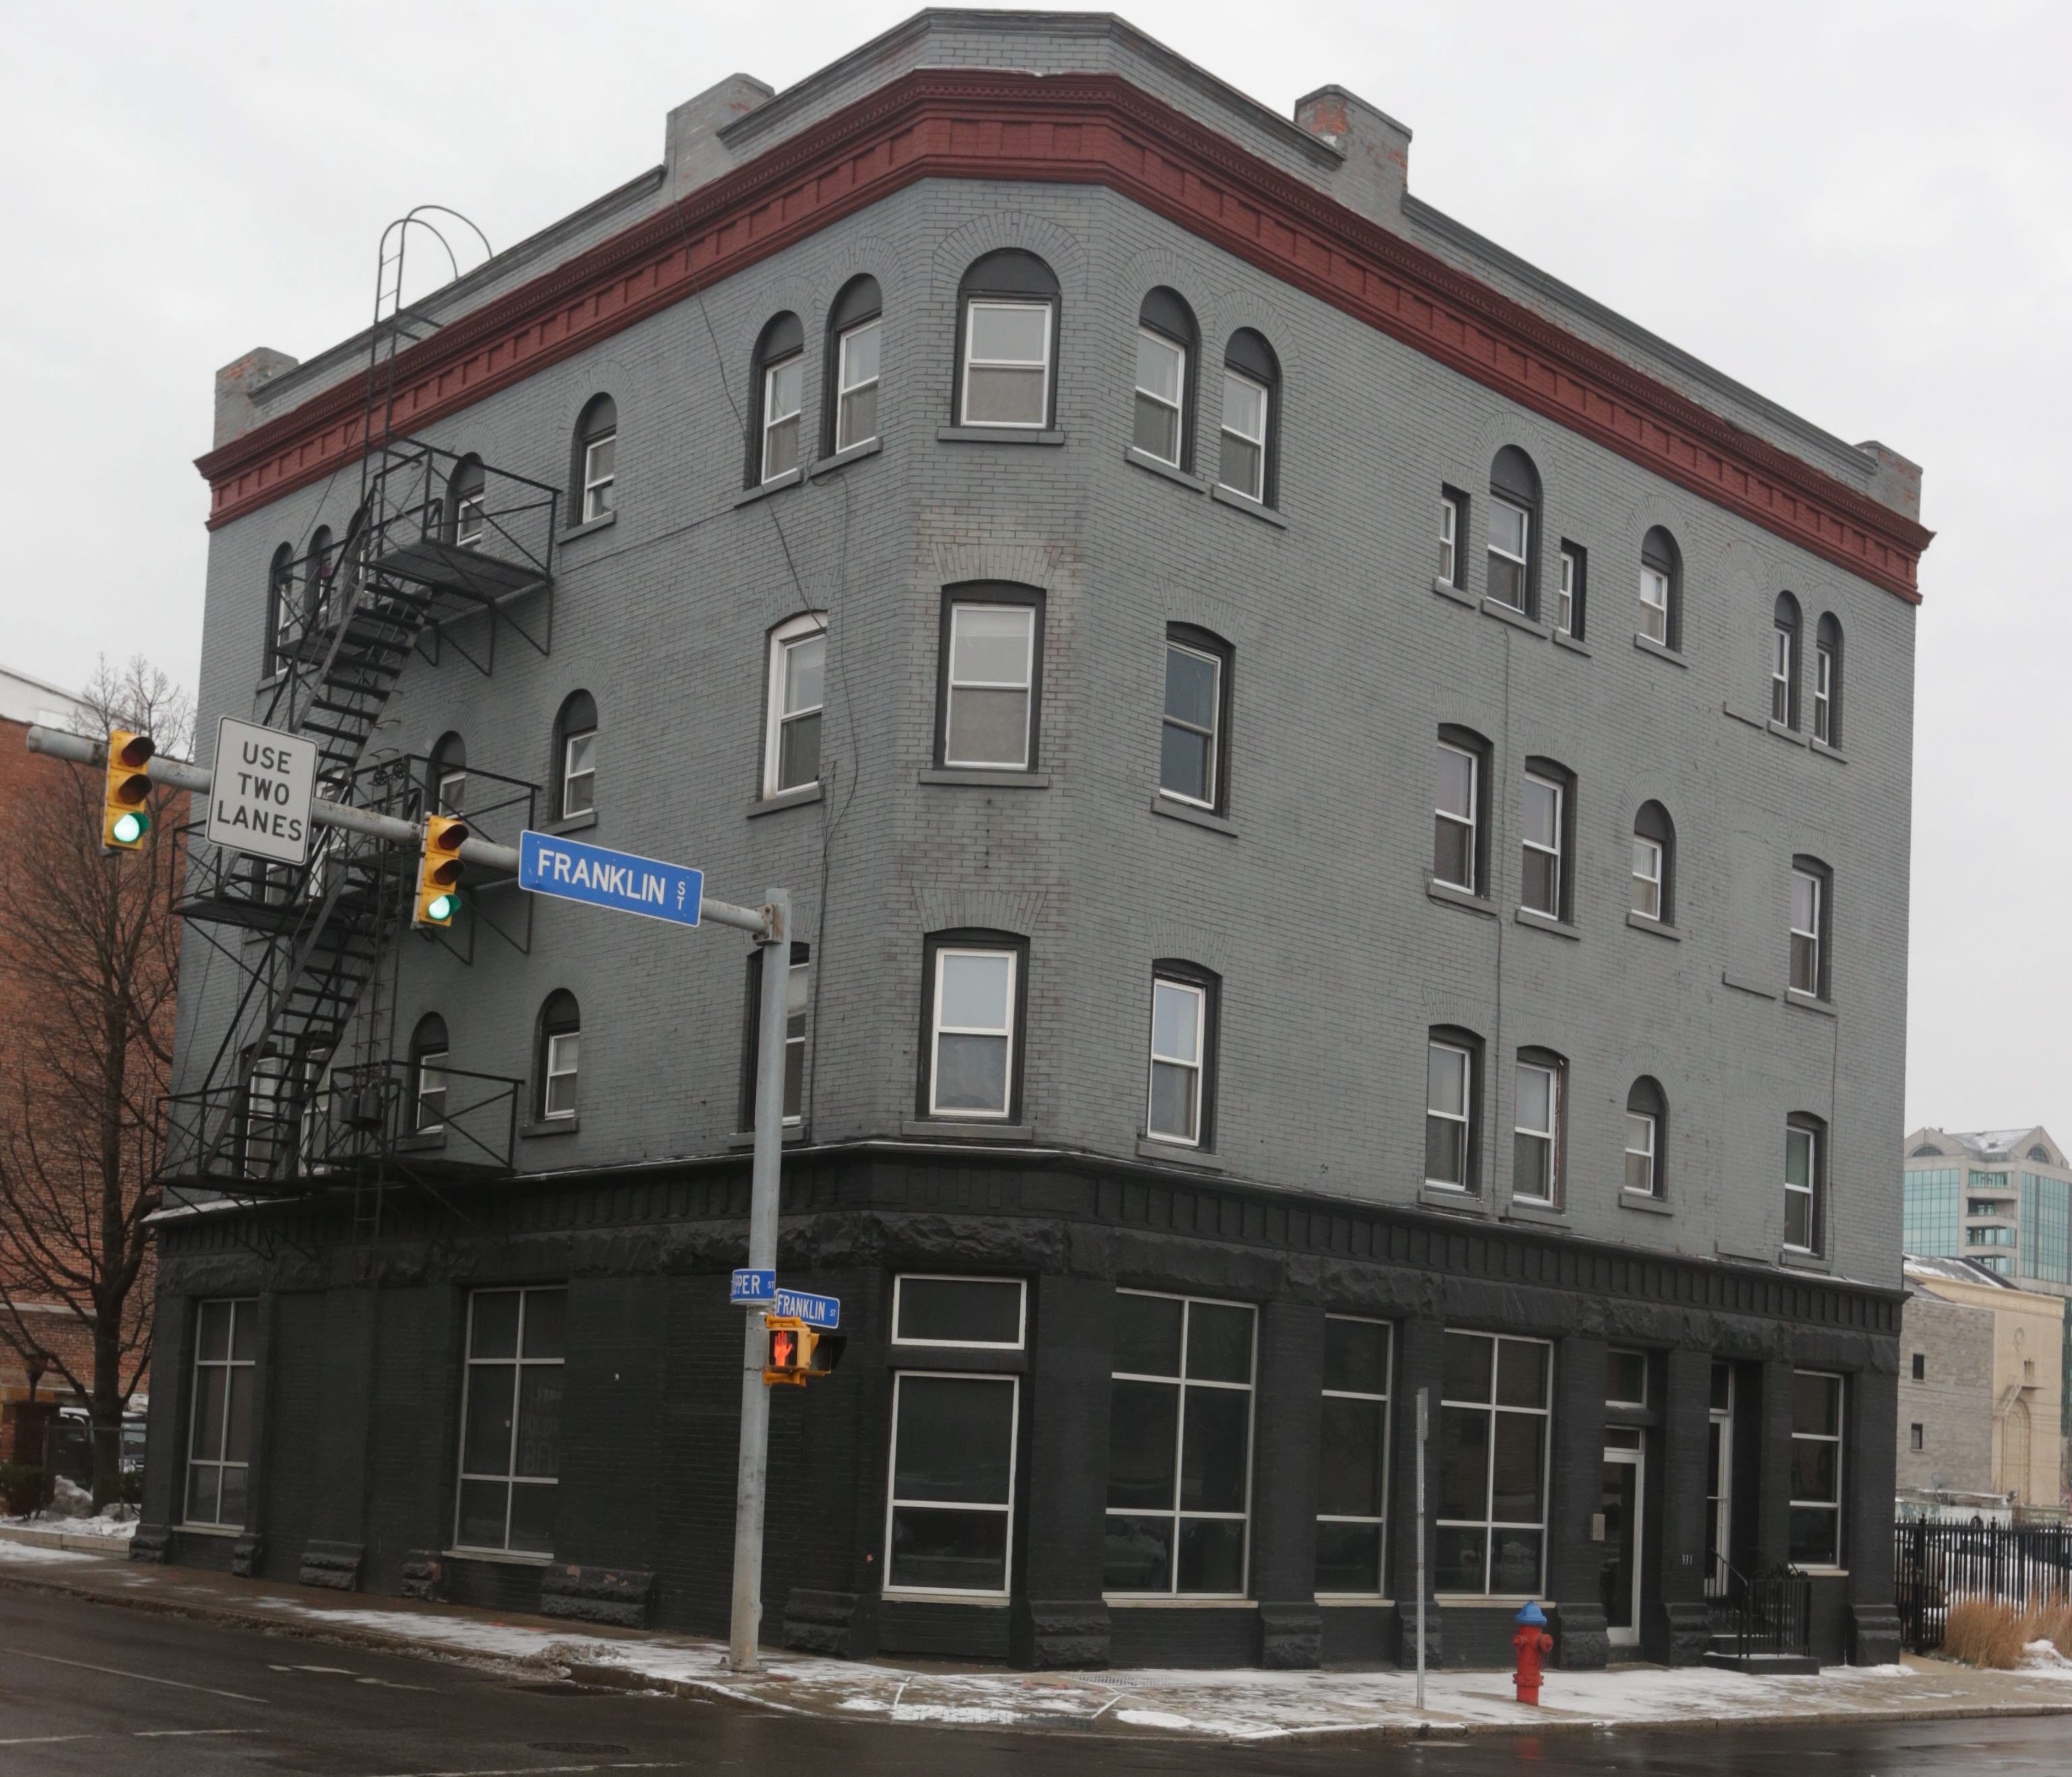 The 130-year-old Bachelor Building, at 331 Franklin St., was demolished in October 2016 to make way for a 12-story mixed-use building. The building was the oldest existing apartment building in Buffalo that was built for that purpose.